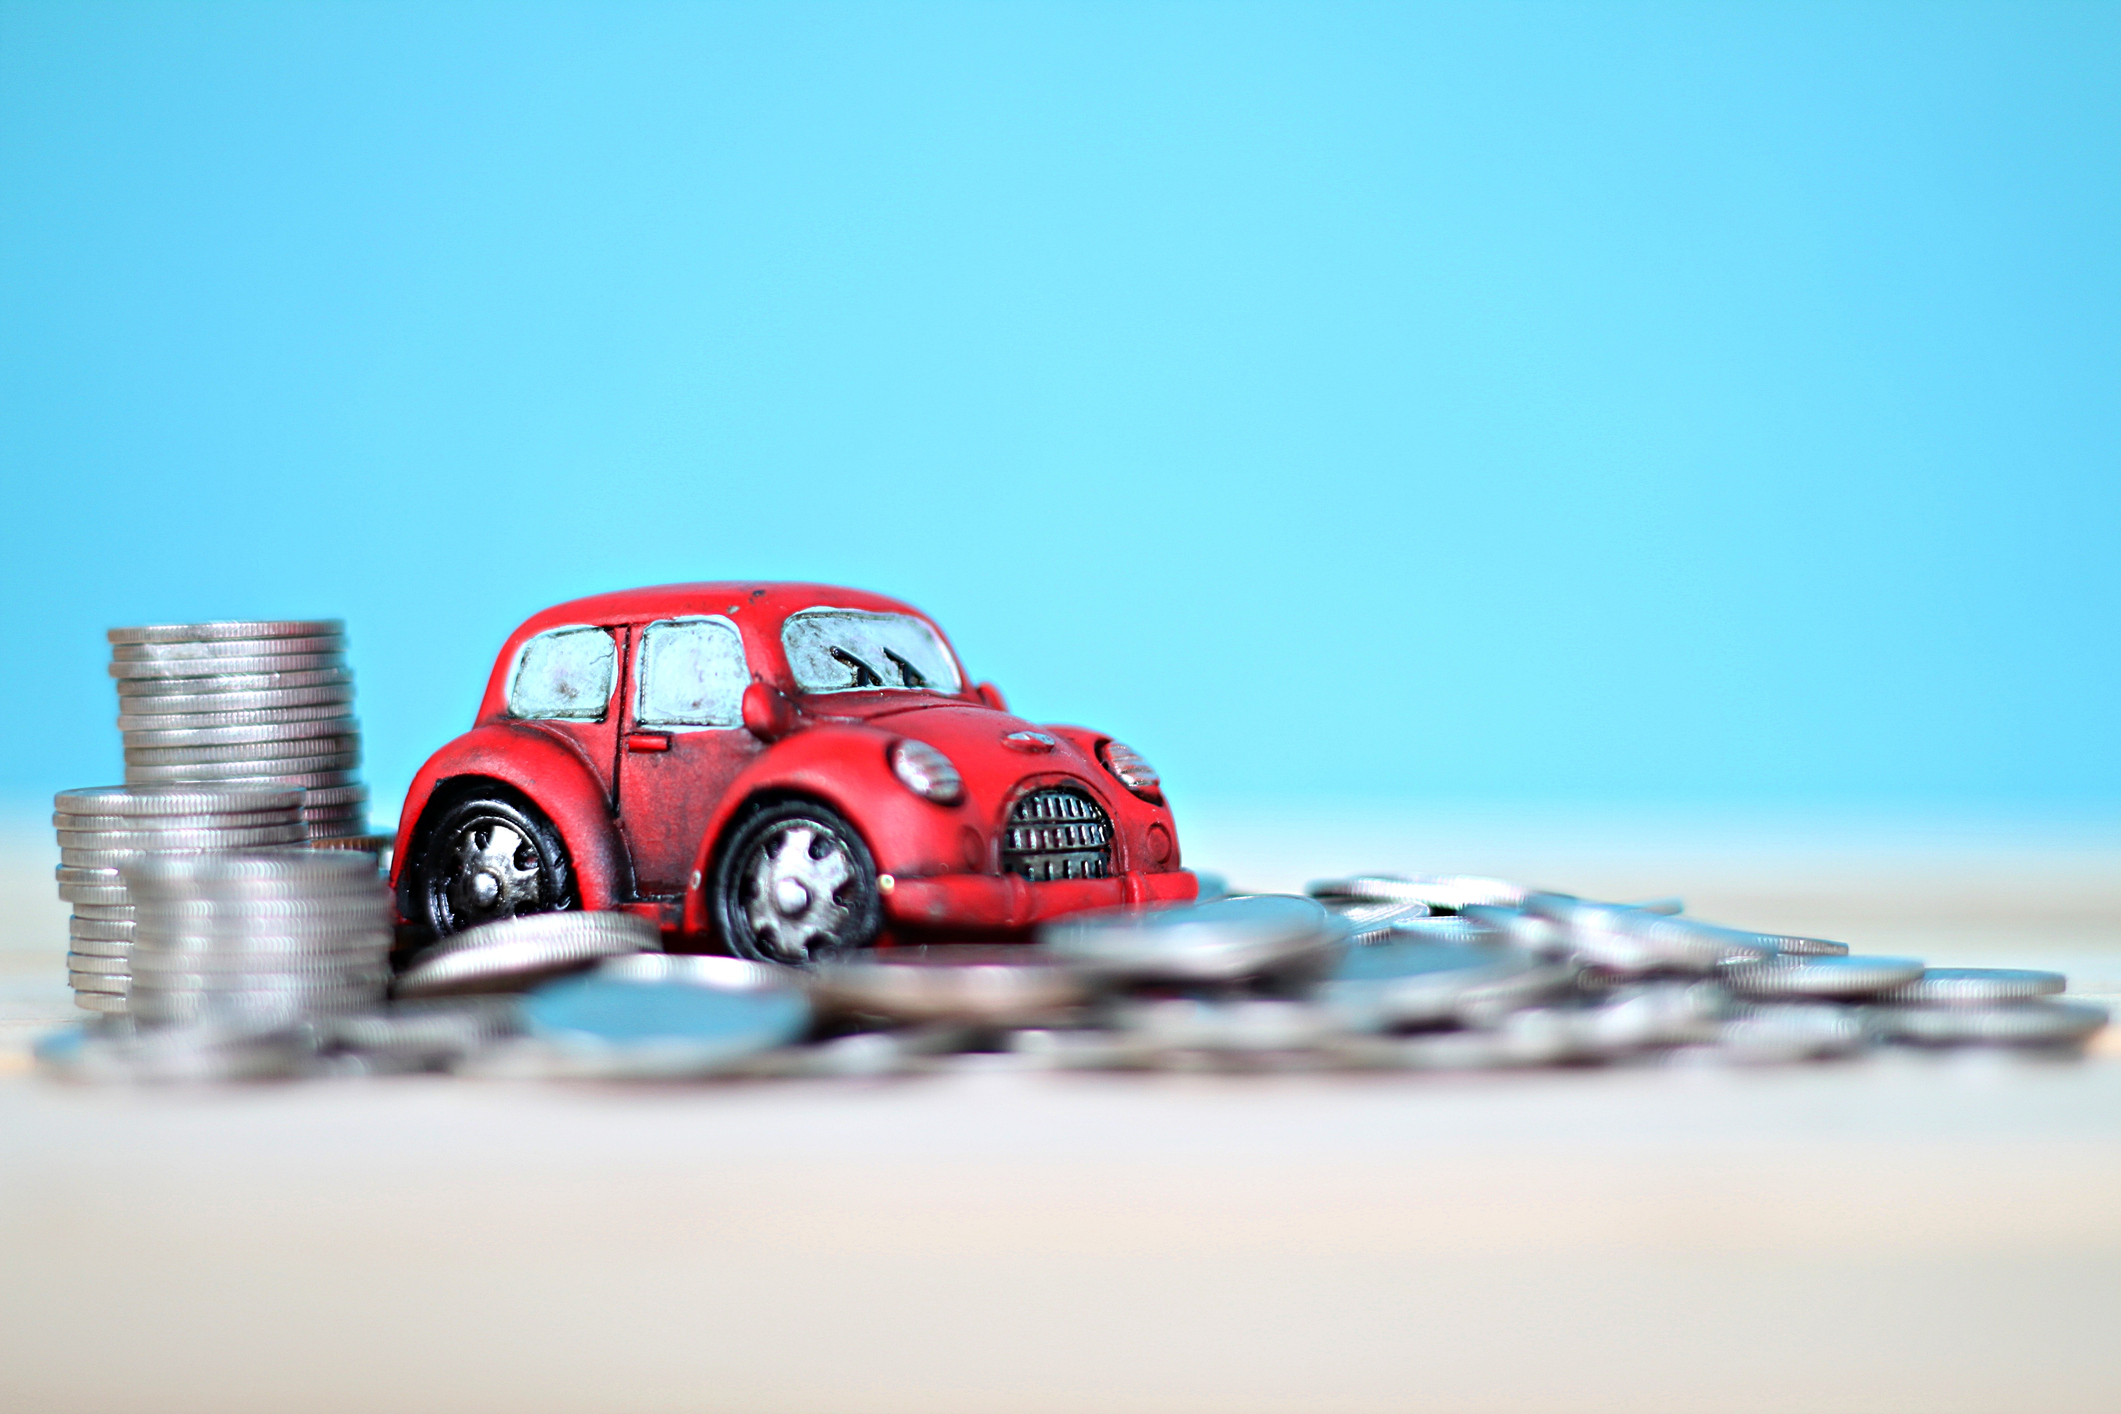 Image: Toy car driving over a pile of money.